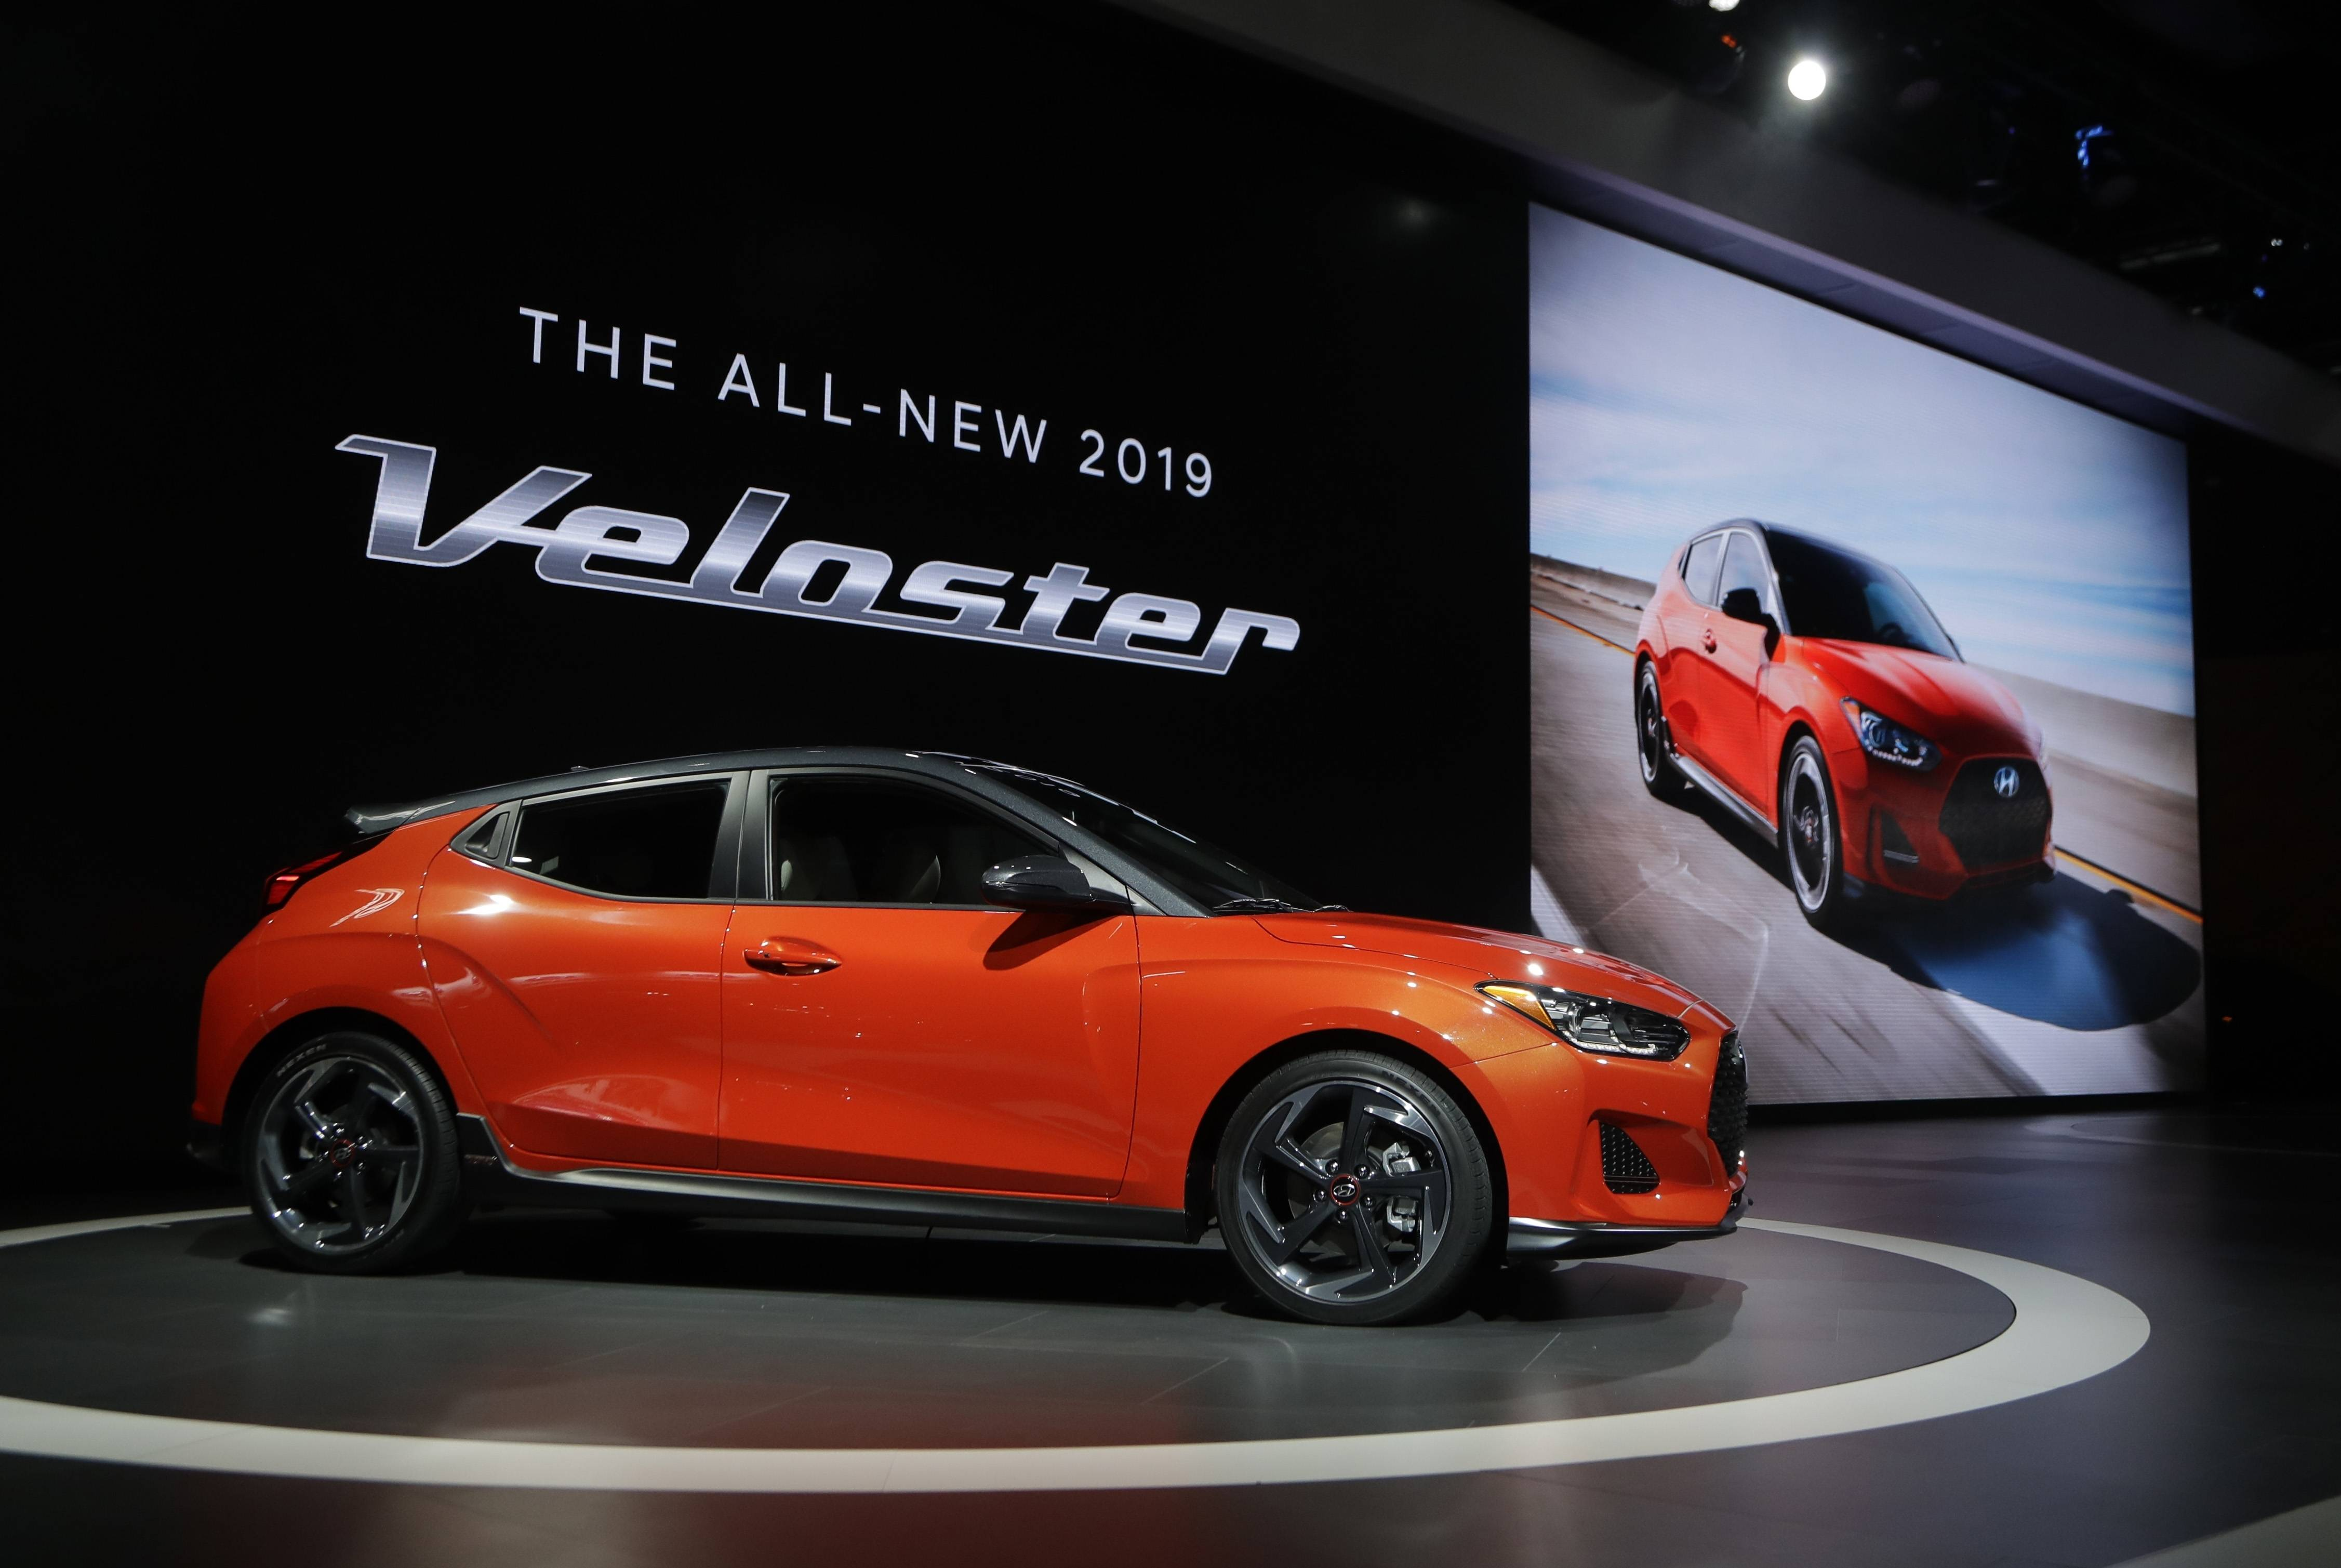 The 2019 Veloster is presented during the North American International Auto Show in Detroit.